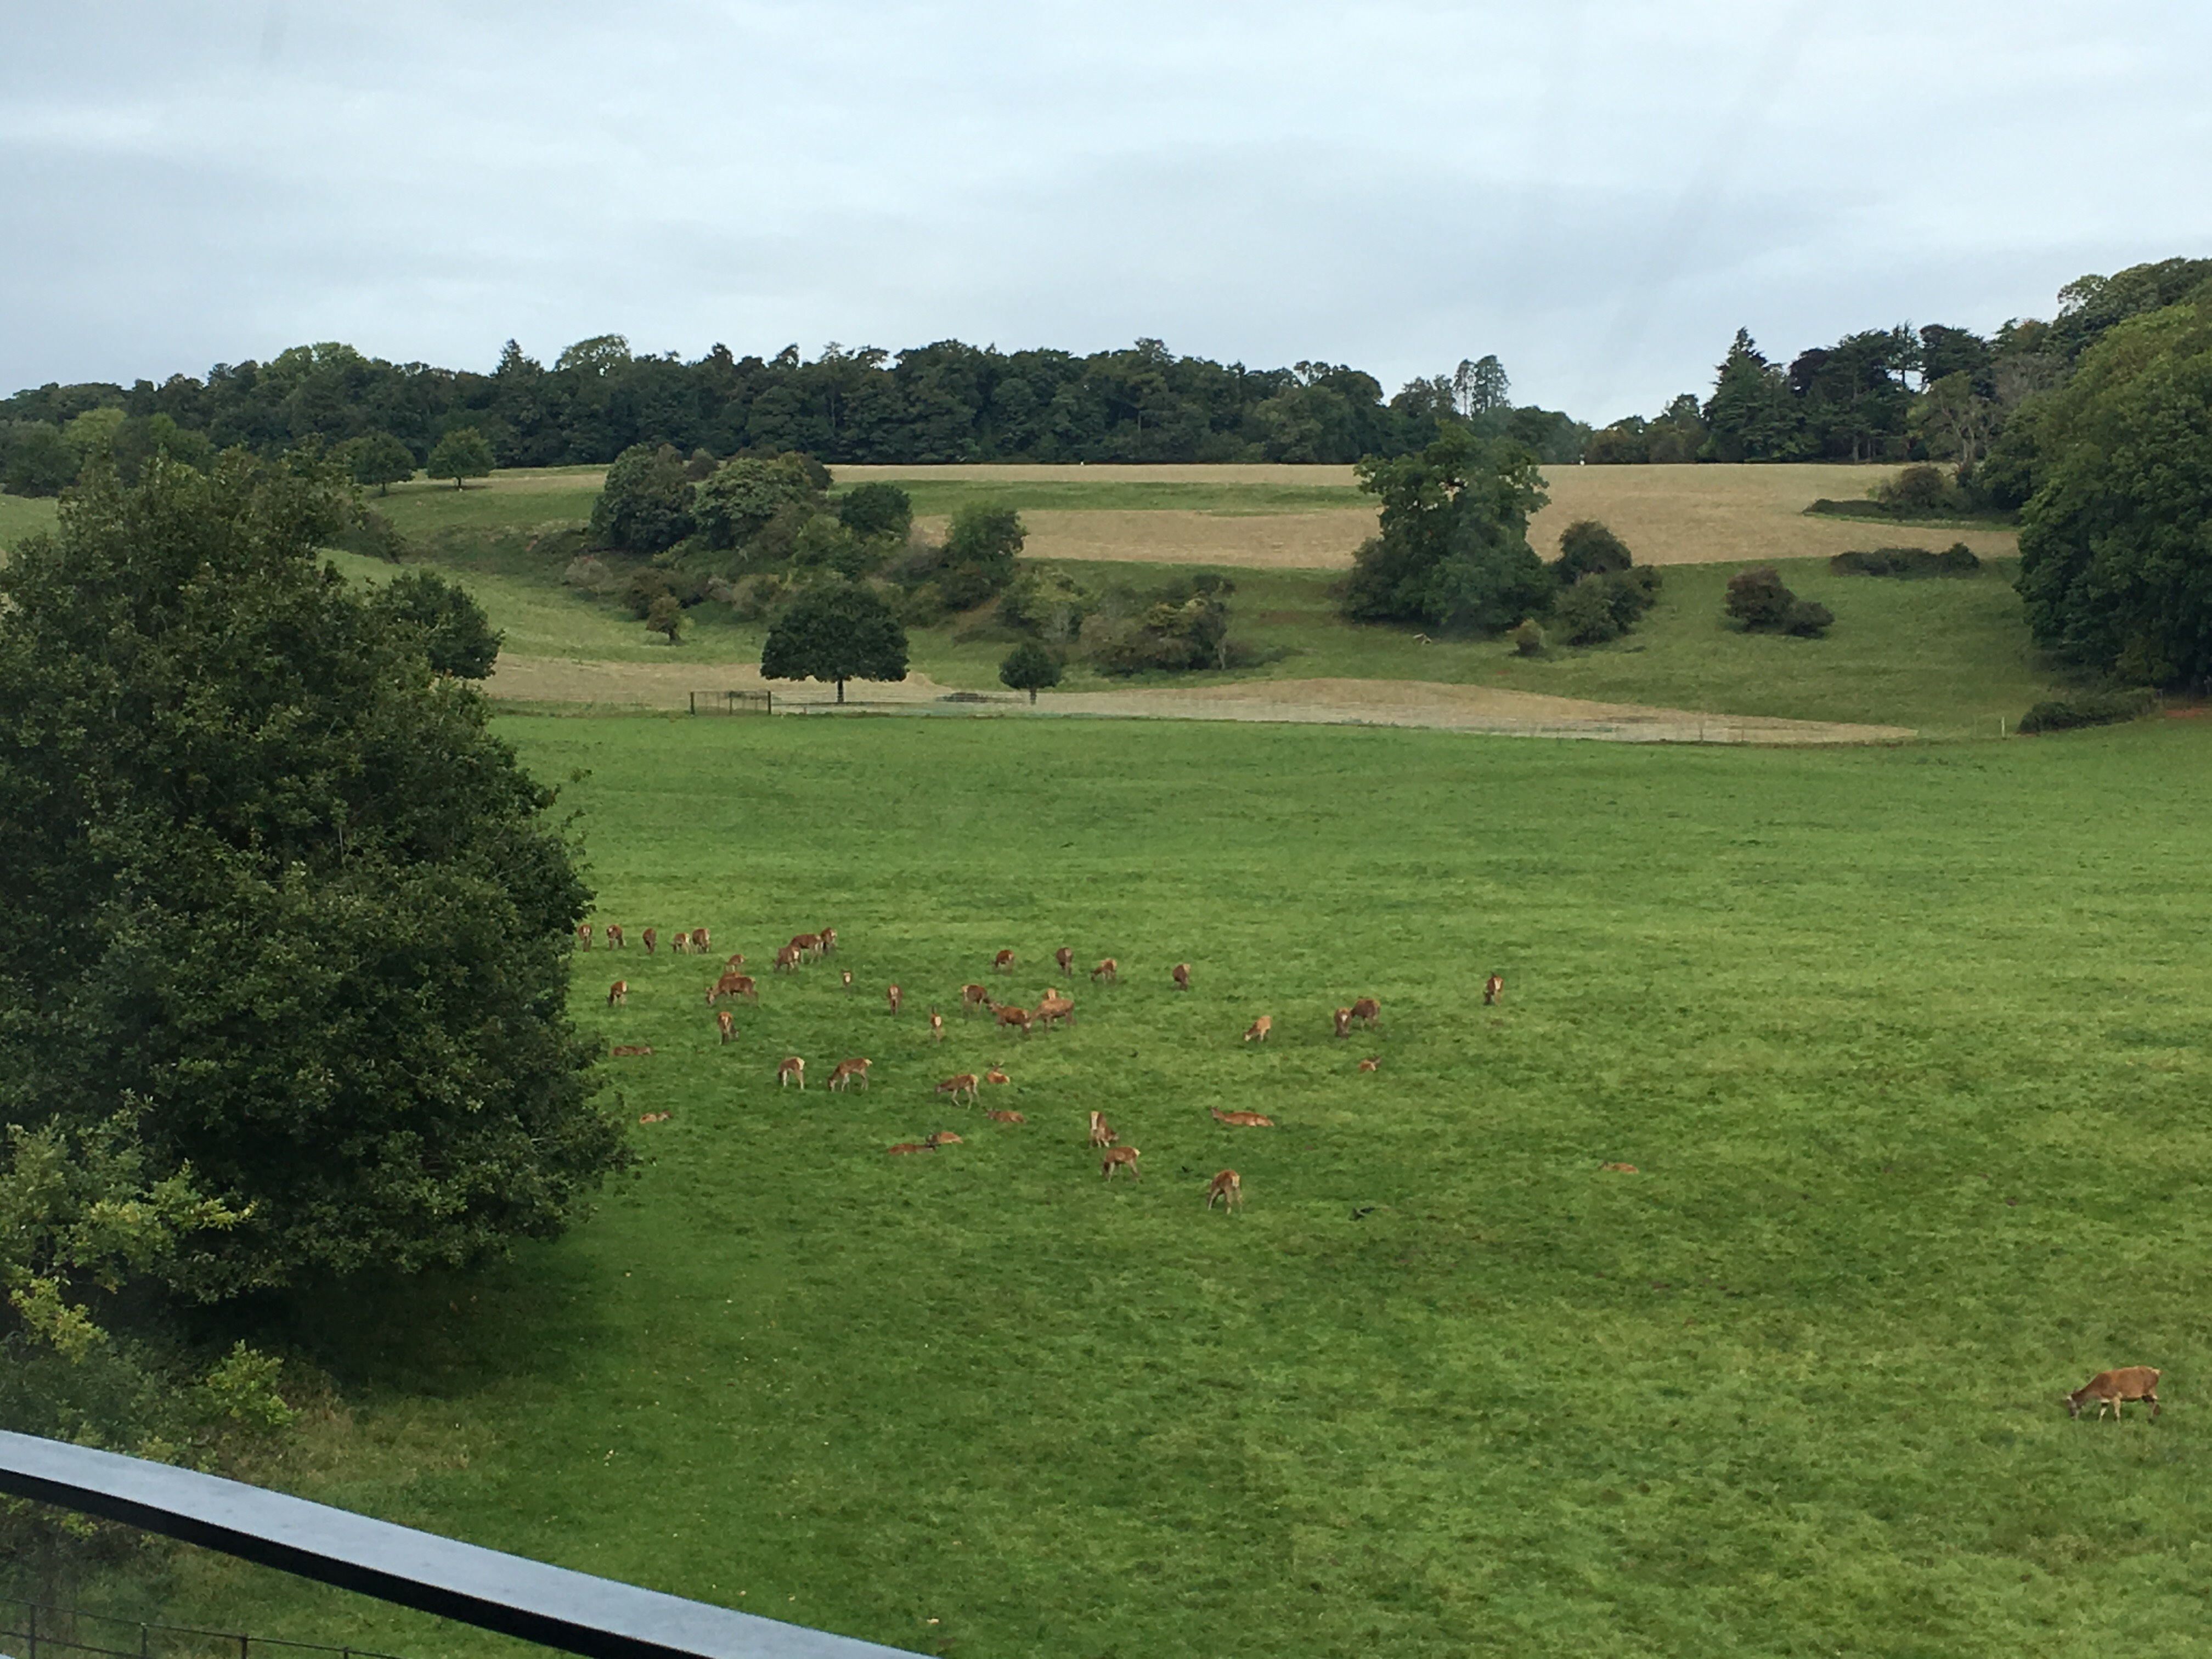 The view of Ashton Court Estate & Deer Park from our new building! September, 2017